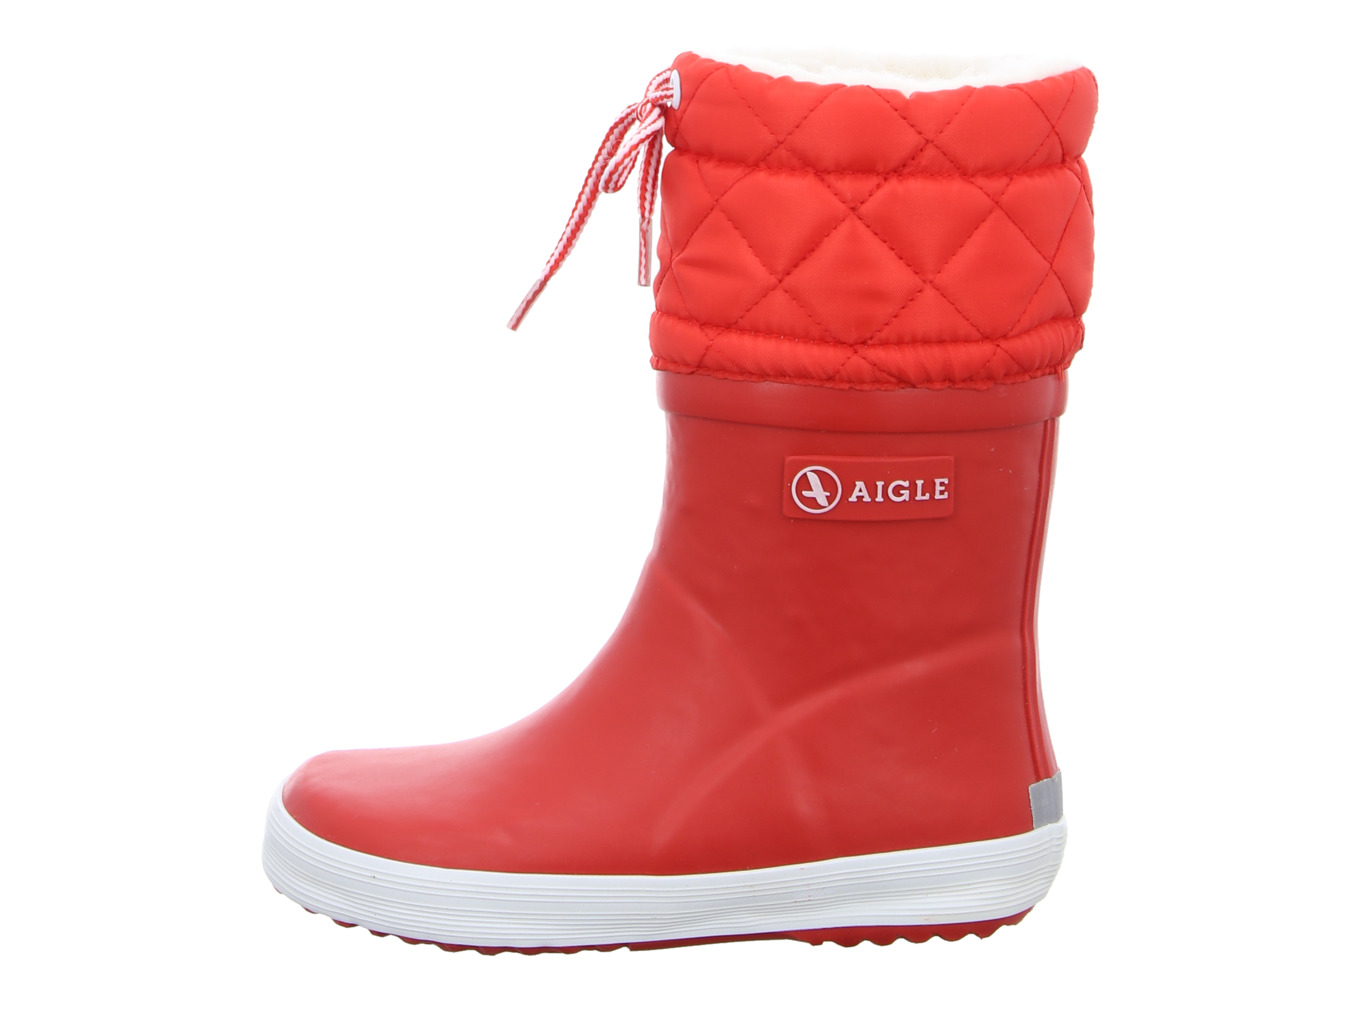 aigle_giboulee_rot_24538_rouge_3127